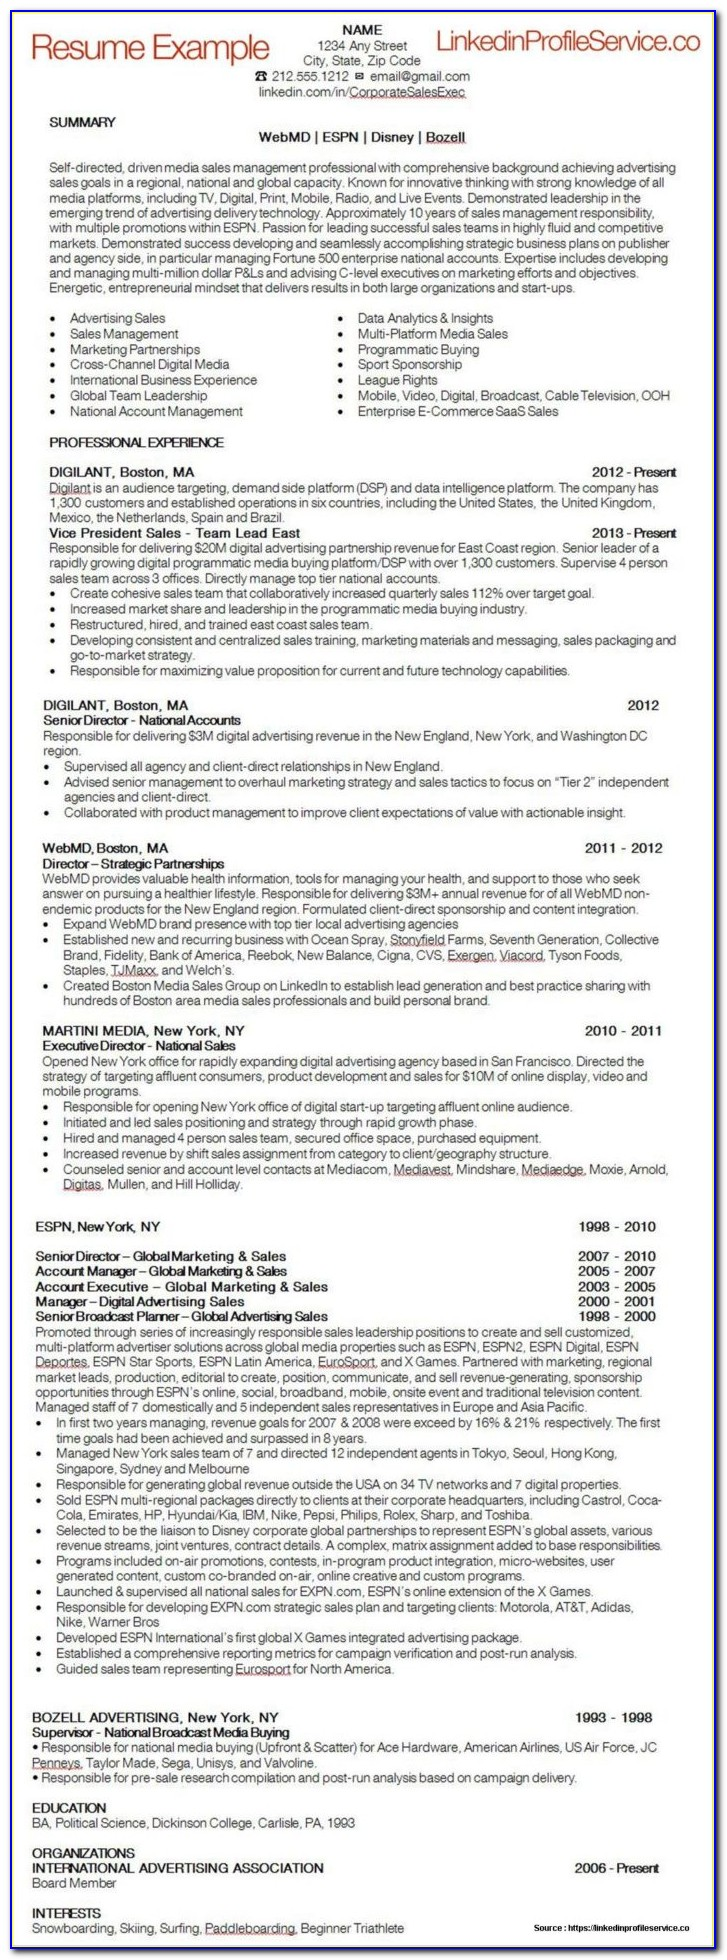 Example Of A Job Resume With No Experience